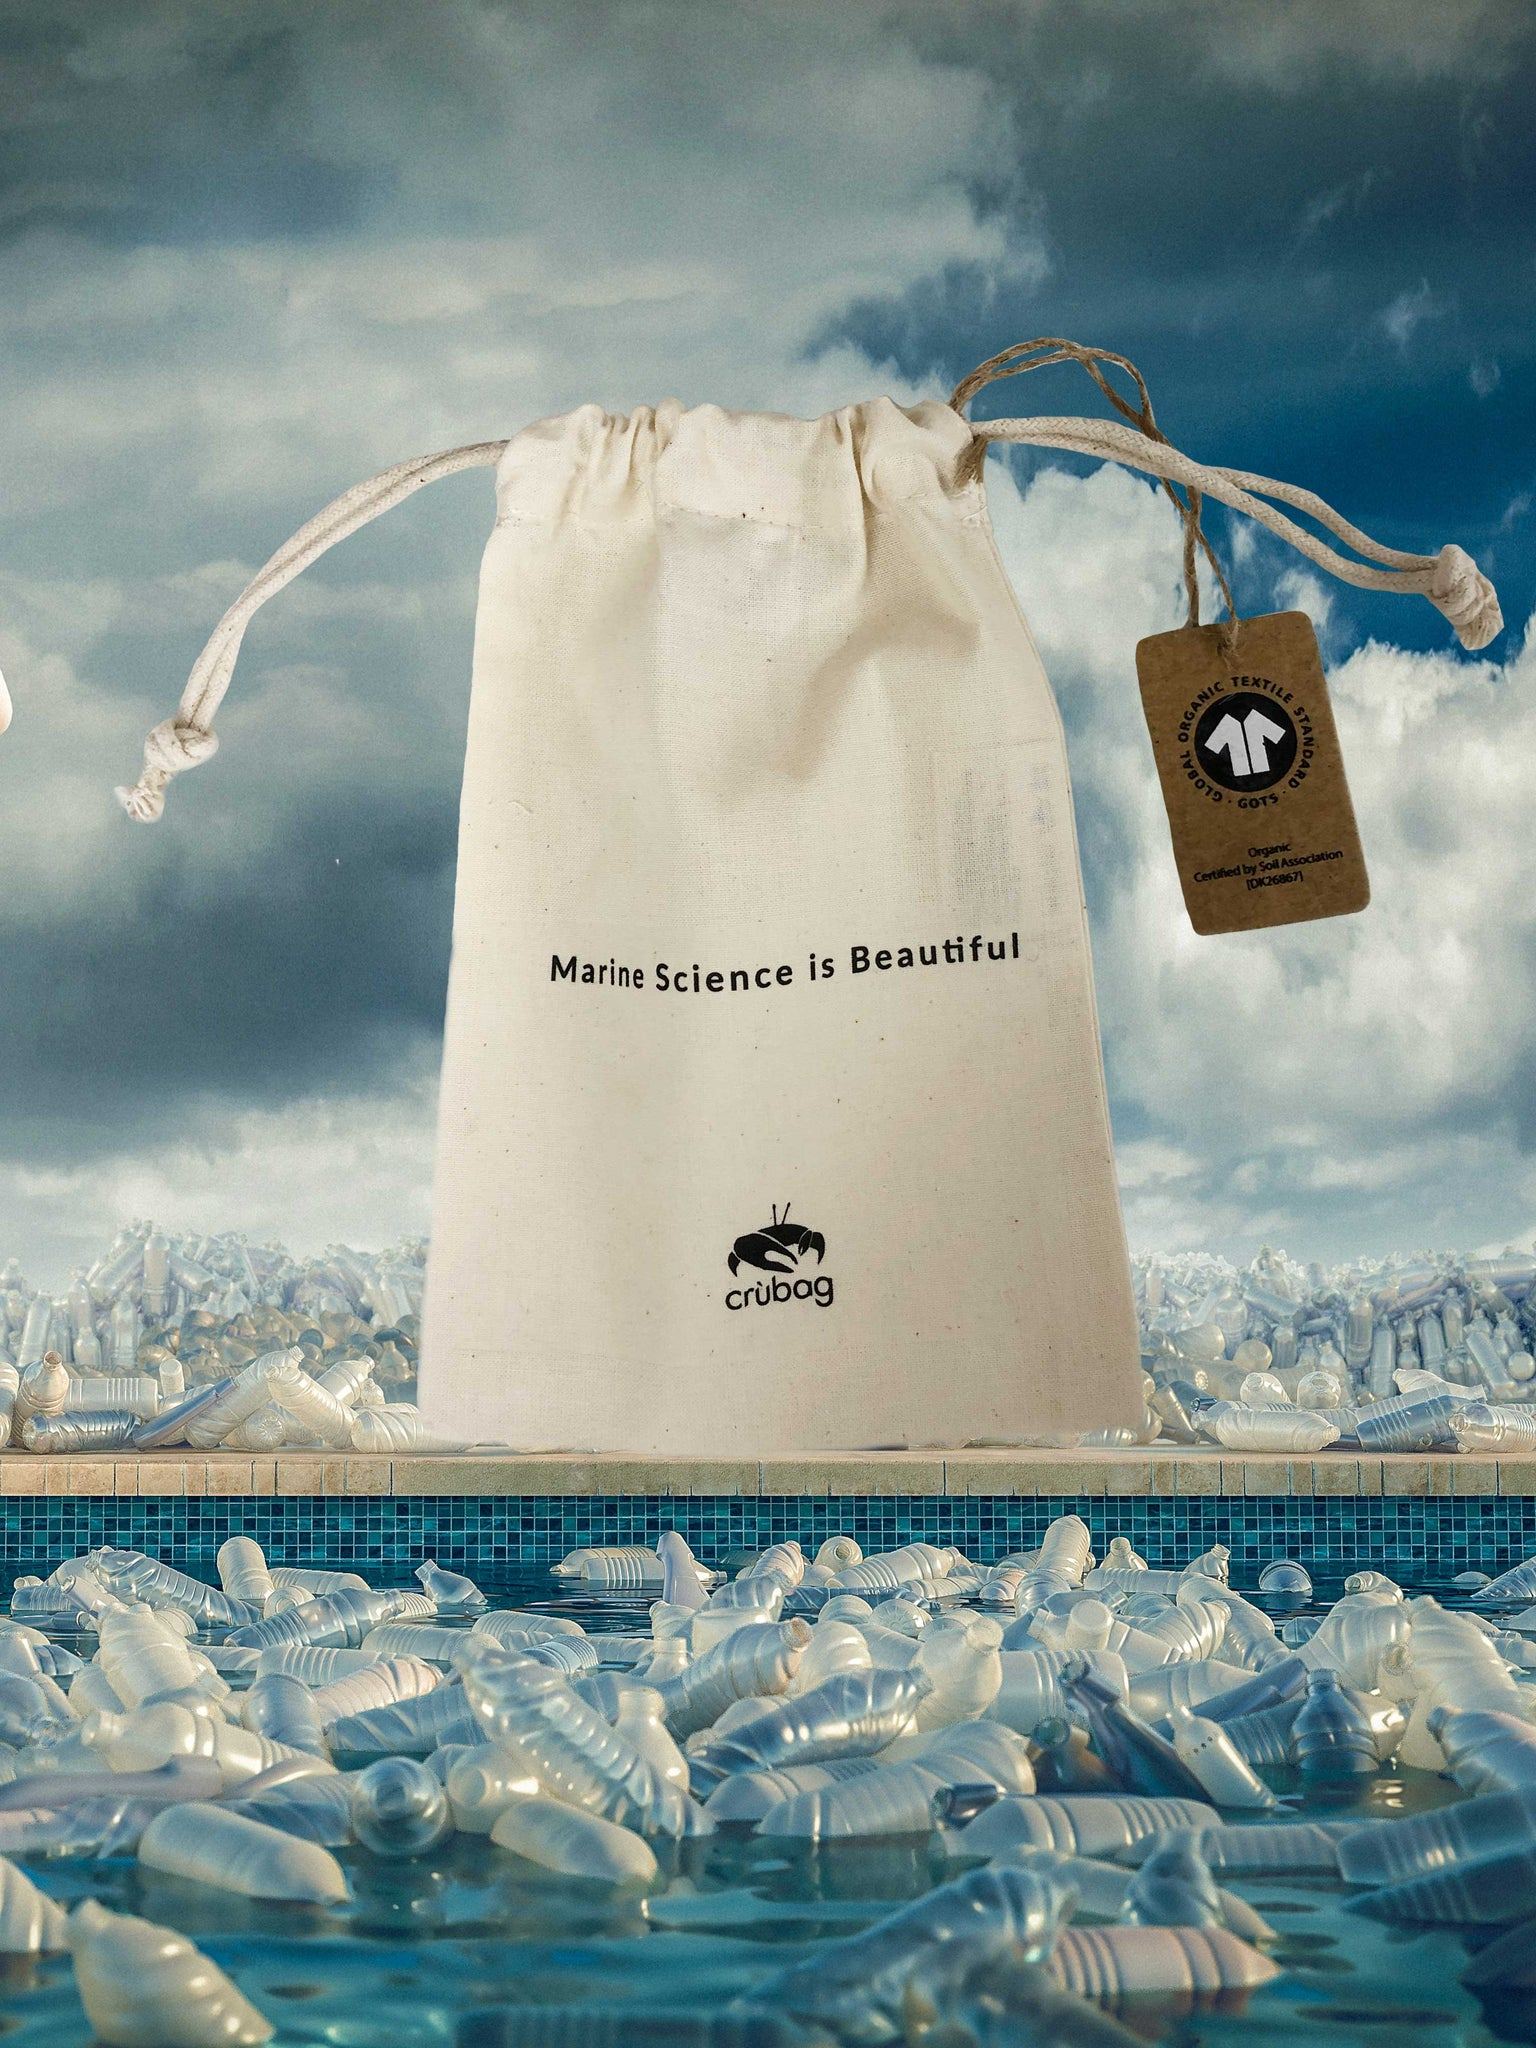 Hydrothermal Vents offcut mask + 'Marine Science is Beautiful' organic cotton string bag